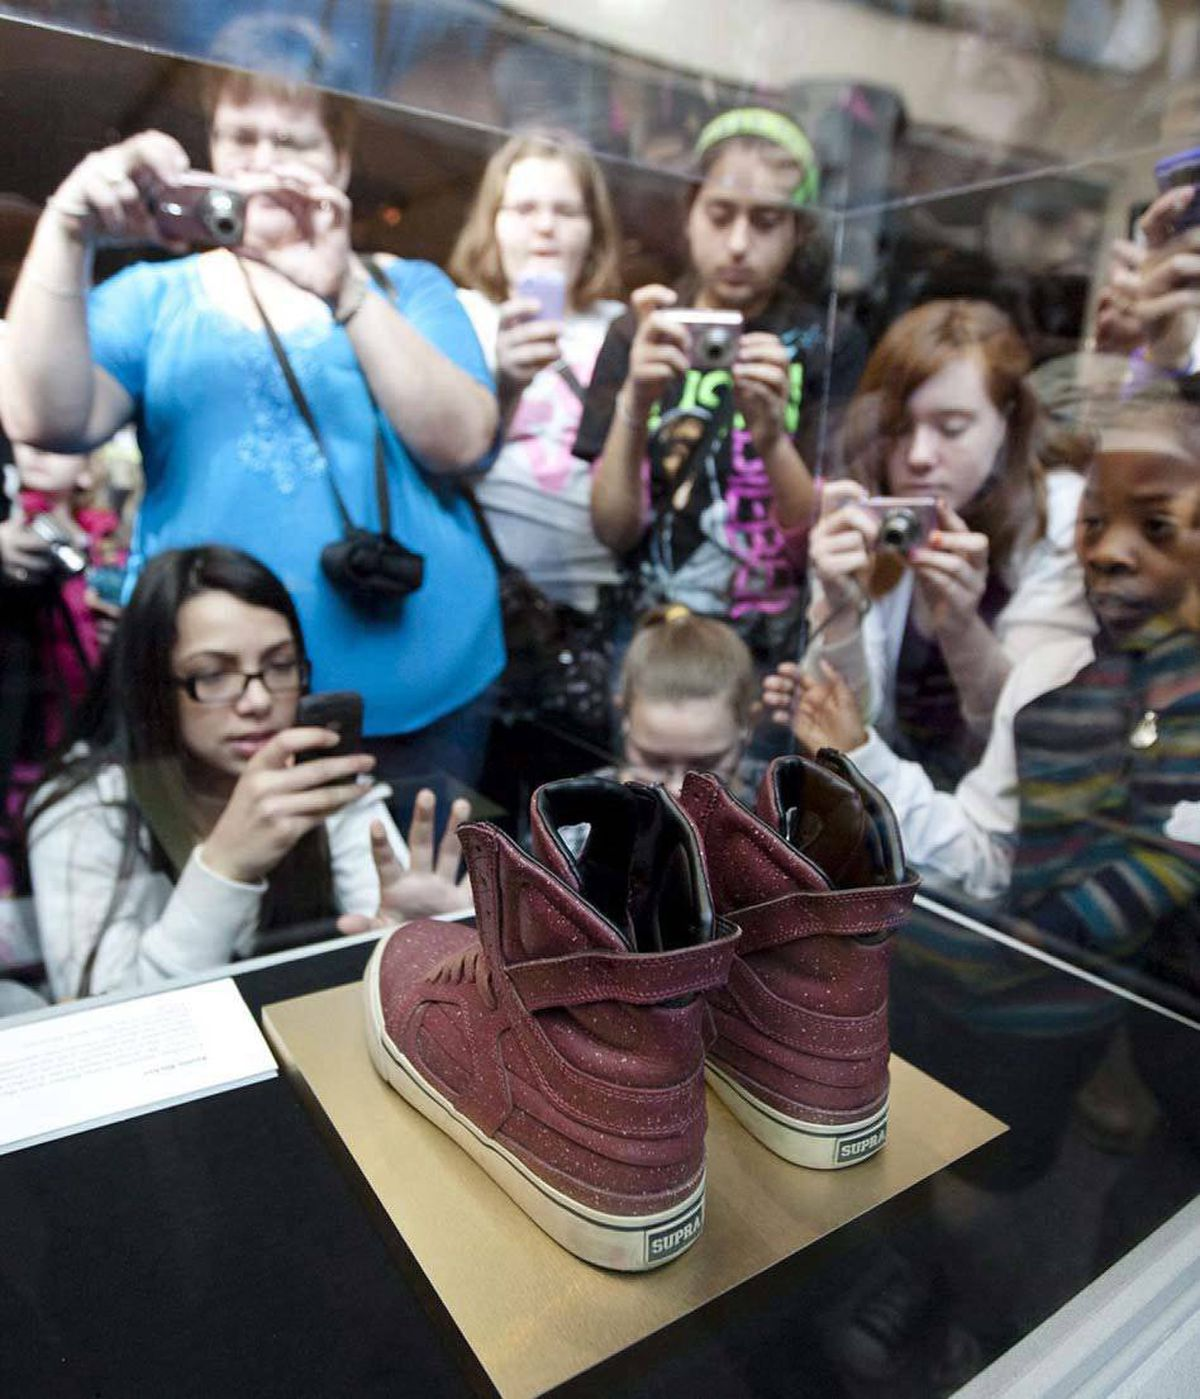 March!! Finally! Justin Bieber's shoes went on display at the Bata Shoe Museum on Toronto on the 14th.